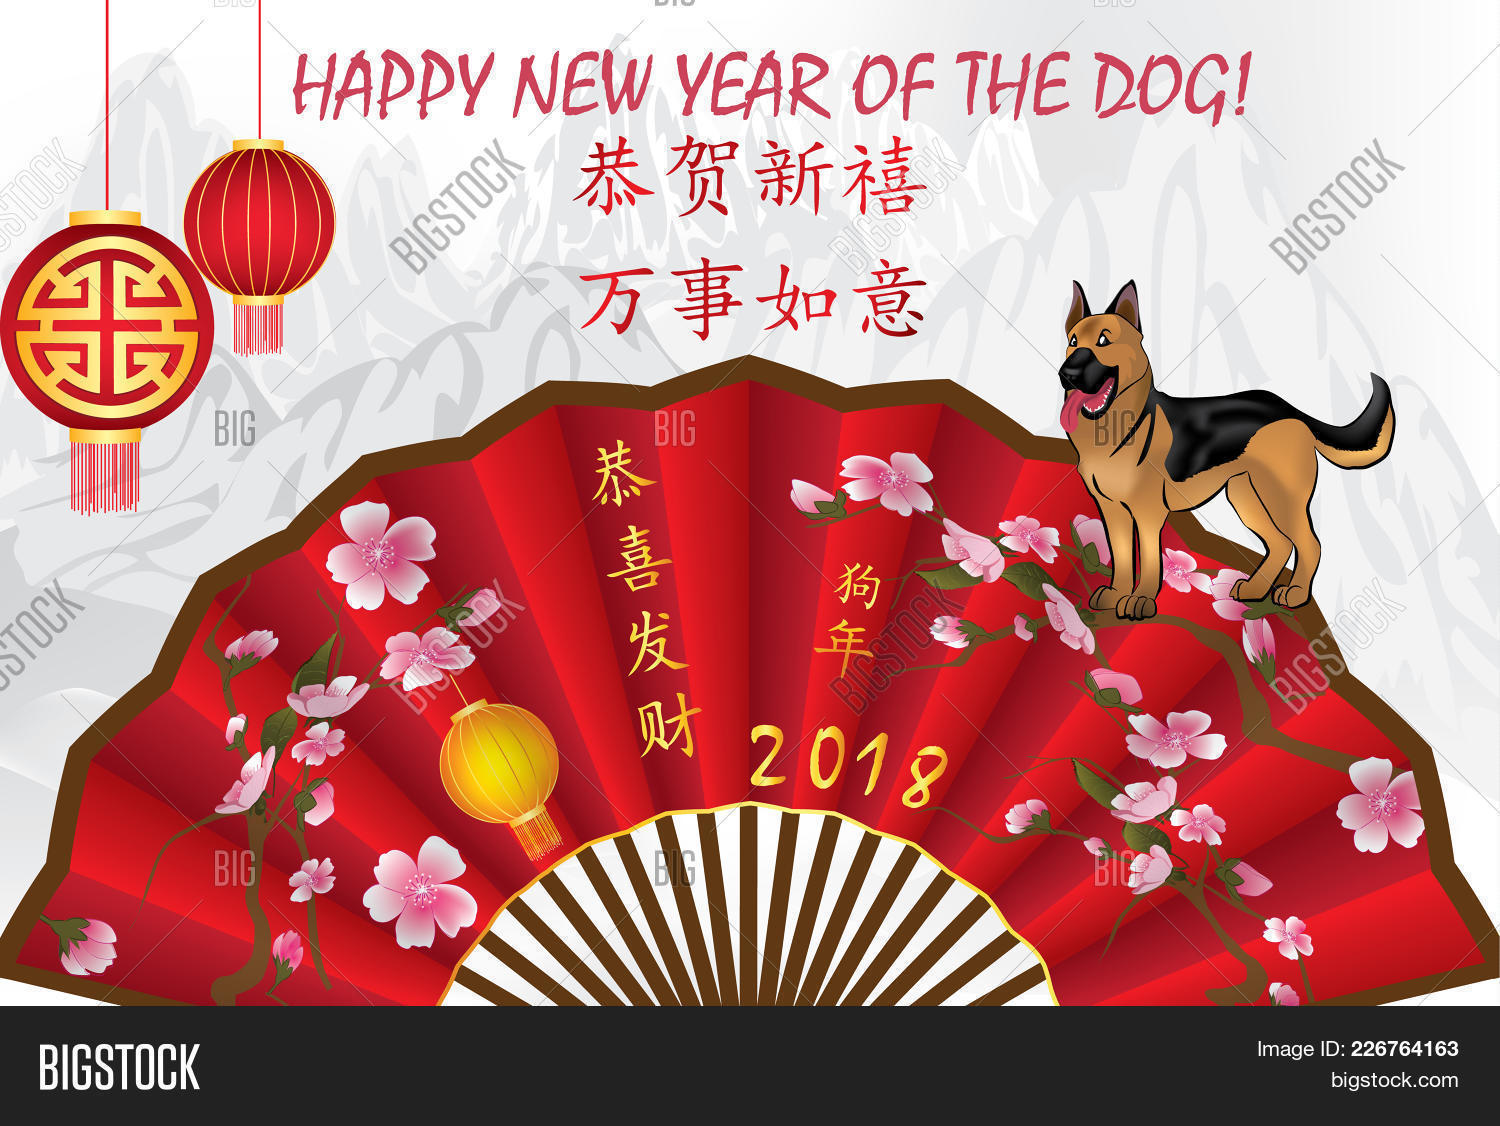 2018 chinese new year image photo free trial bigstock 2018 chinese new year greeting card for the lunar new year with text in english m4hsunfo